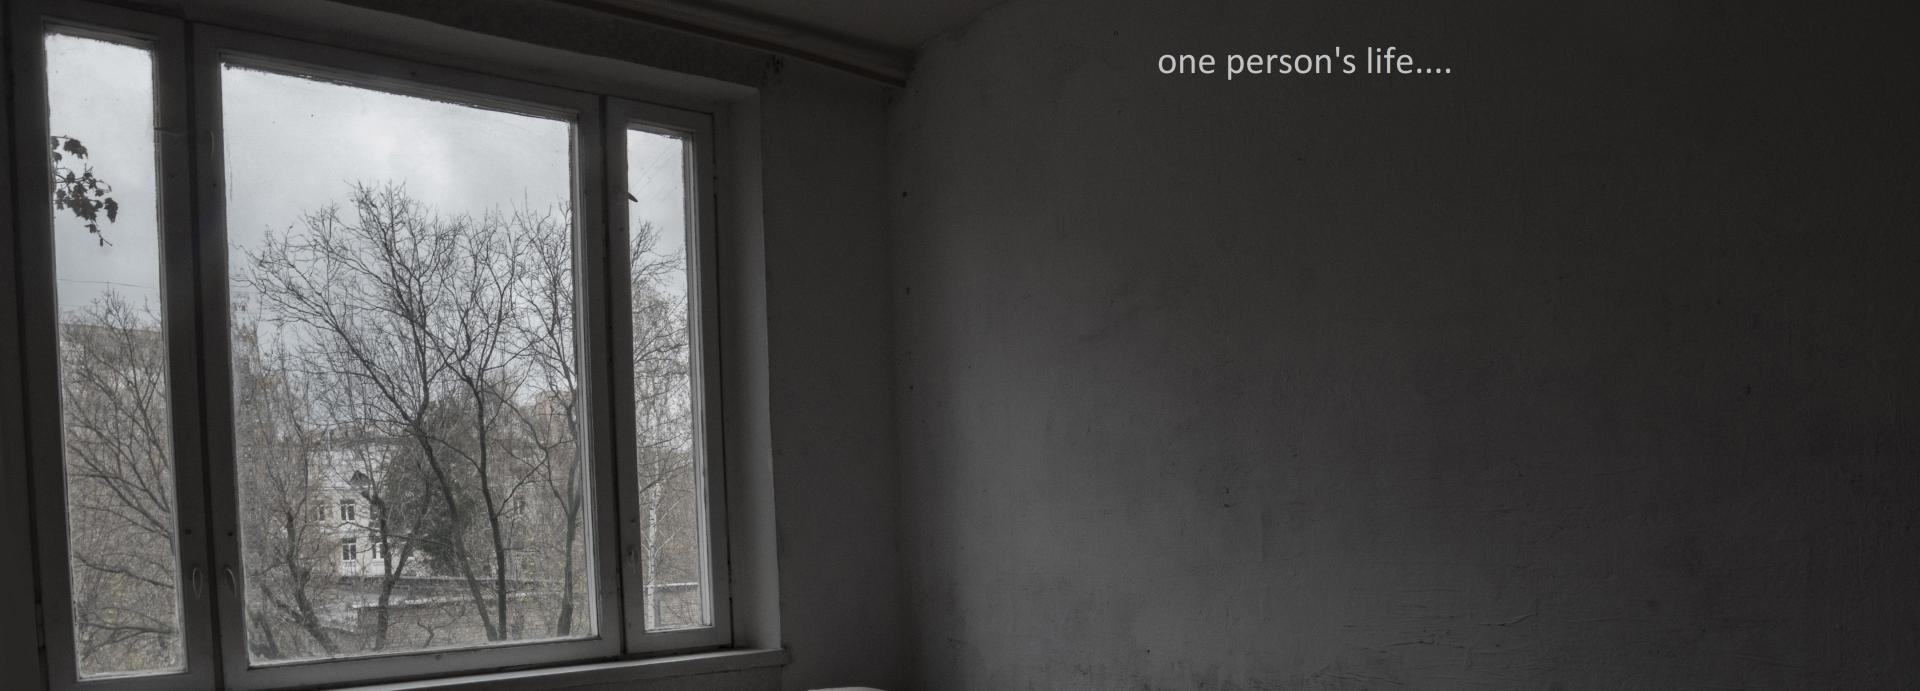 One person's life